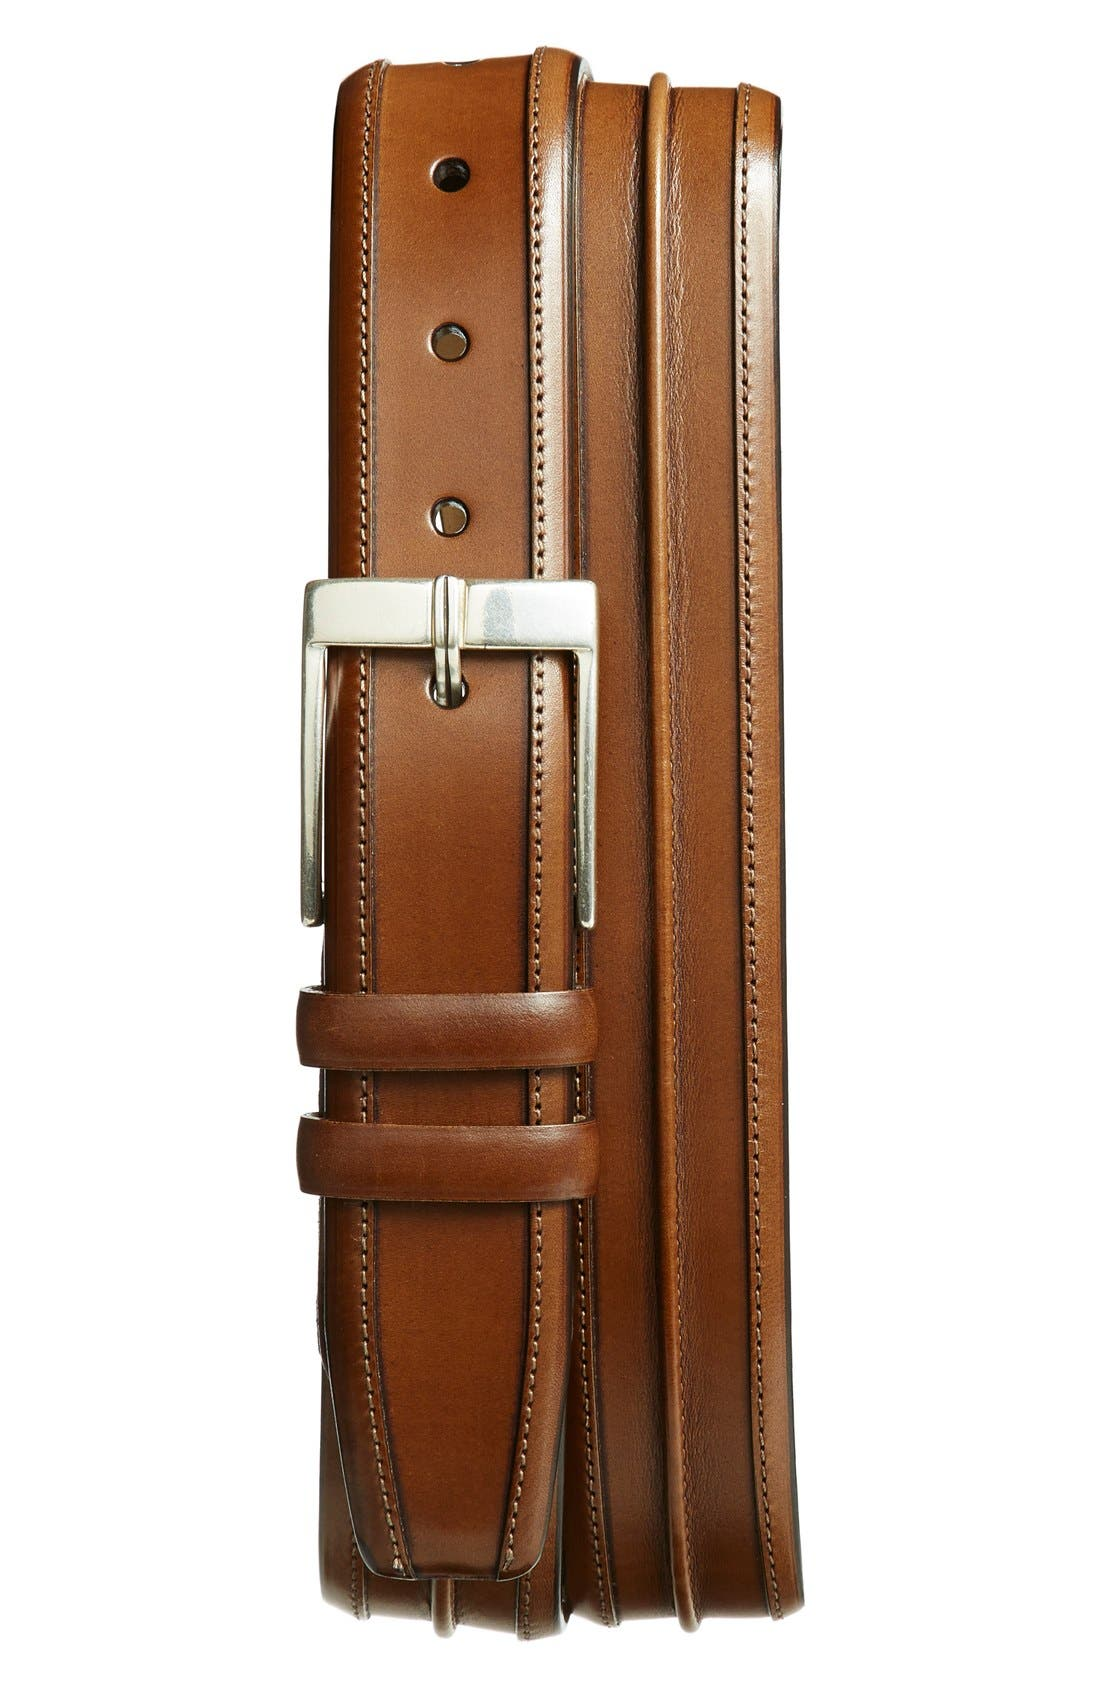 MEZLAN 'Parma' Leather Belt